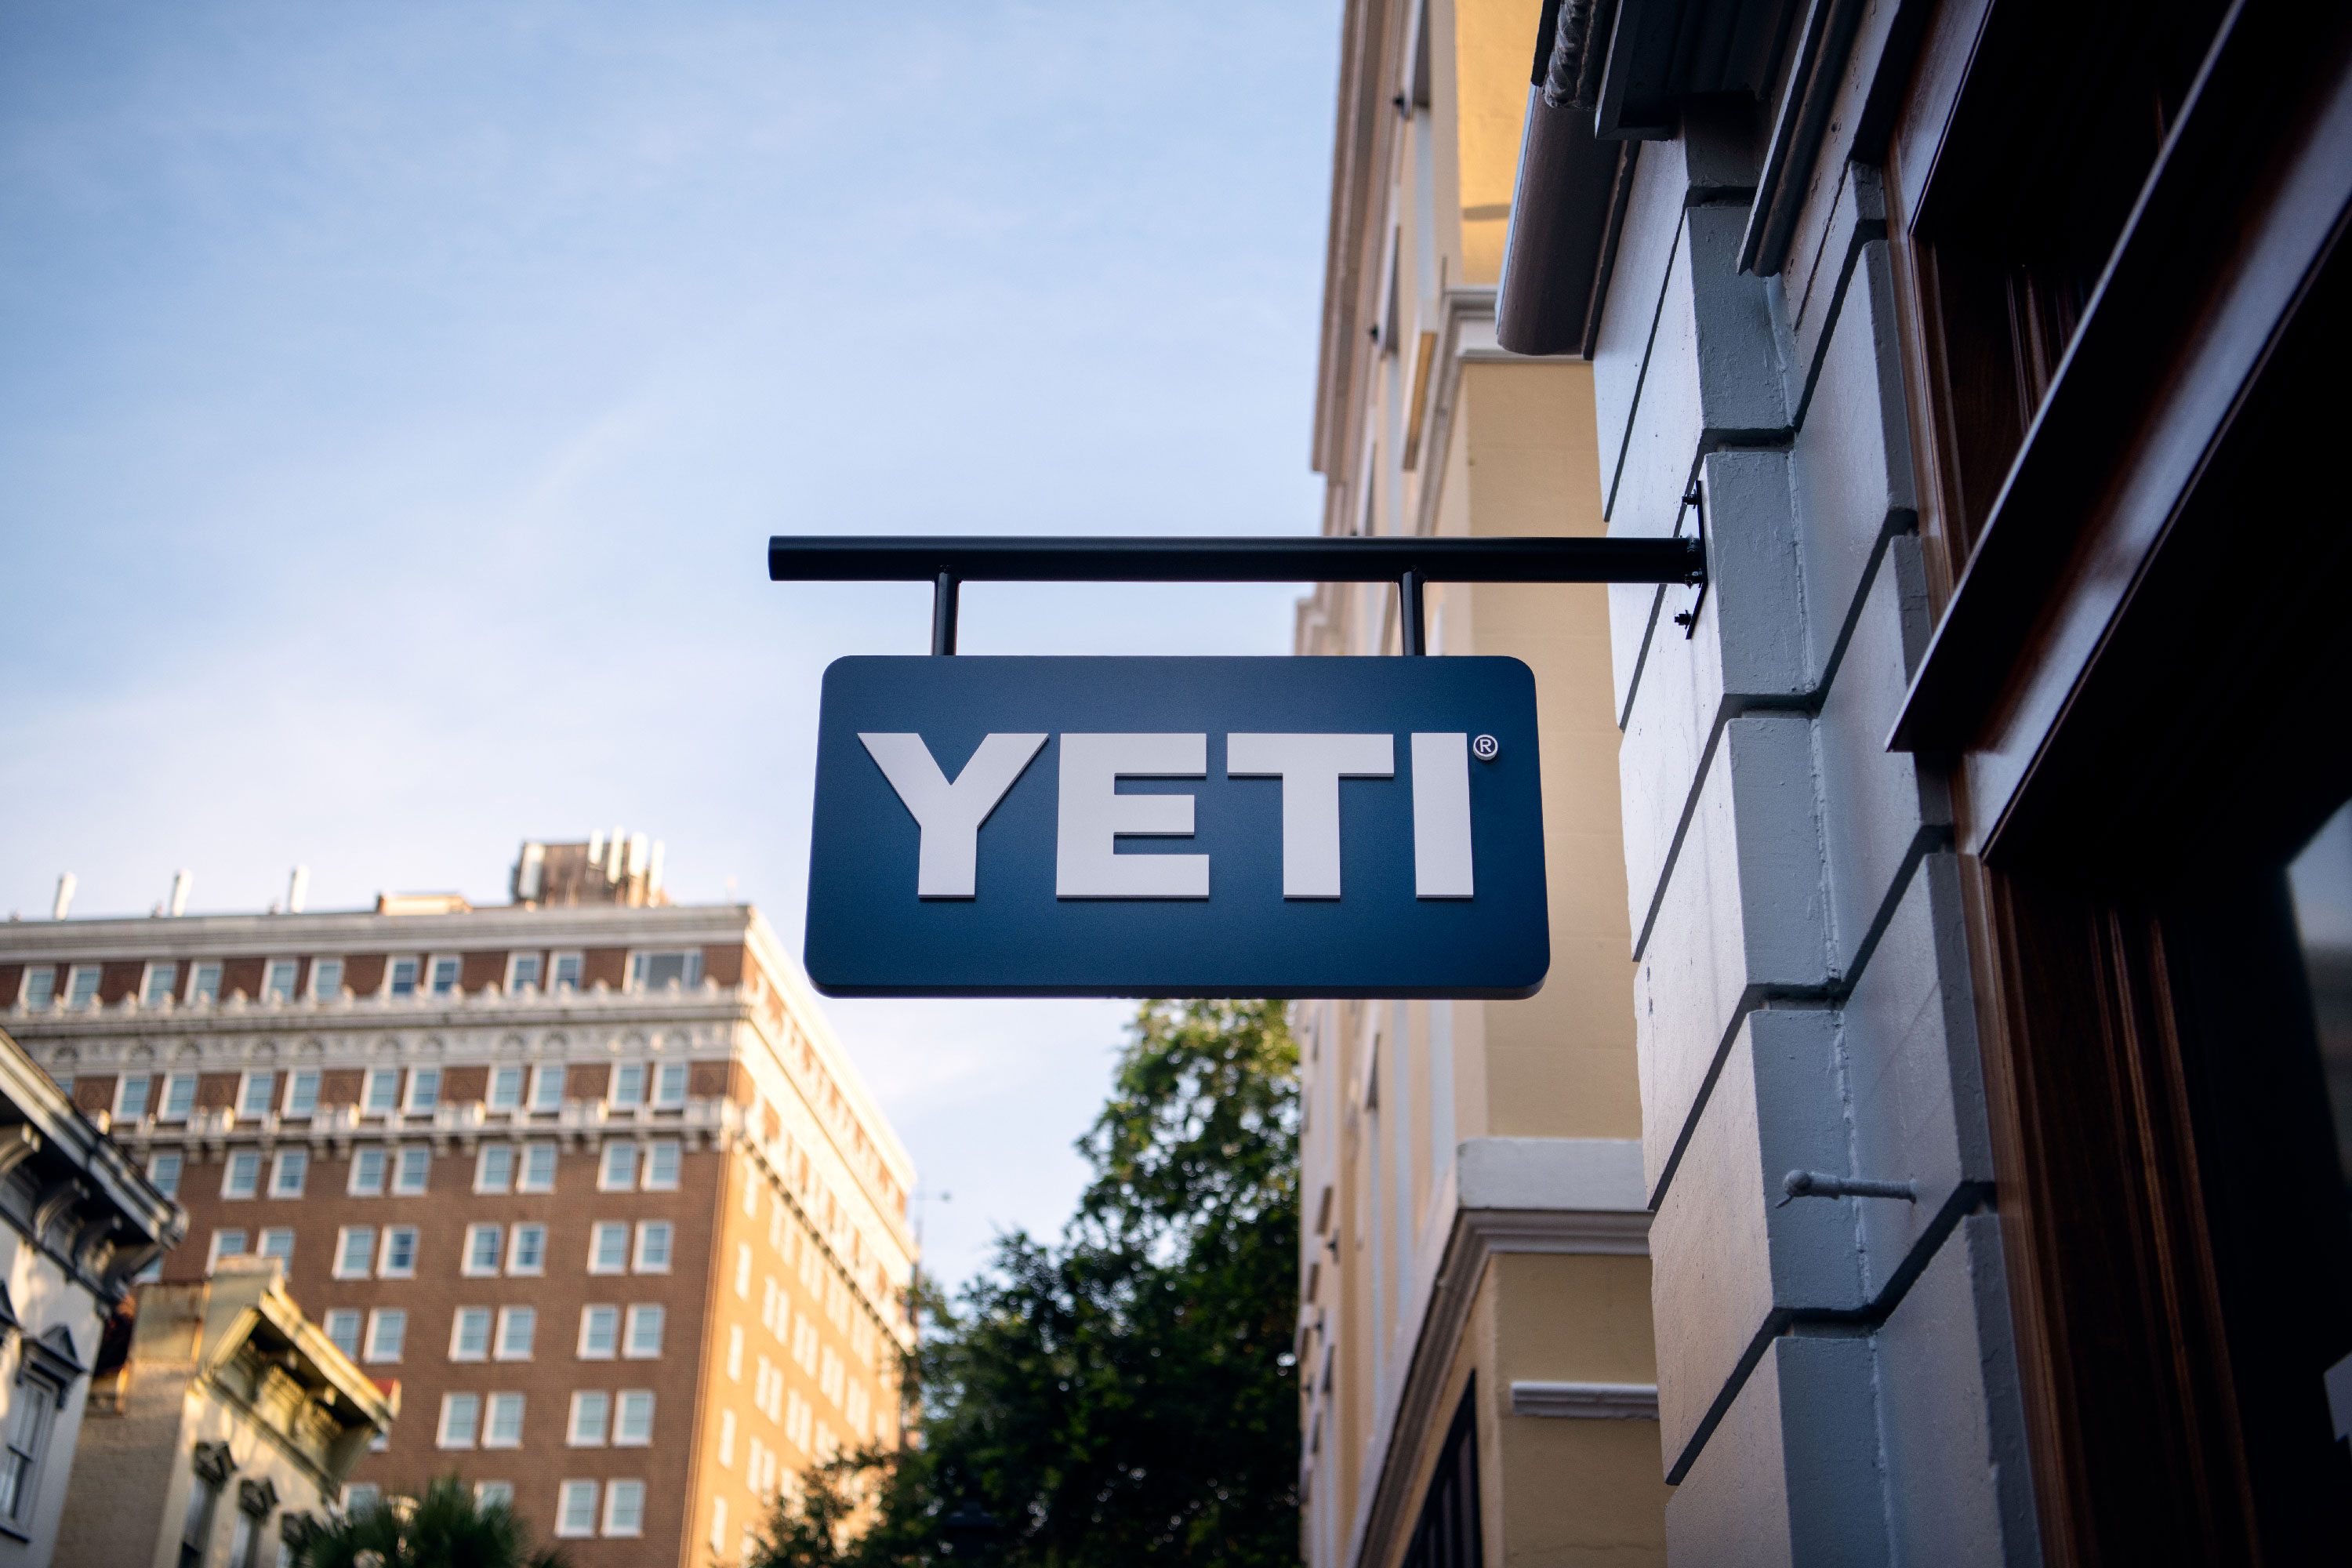 Yeti Cyber Monday Sale >> Yeti Launches Charleston Store Aims At National Expansion